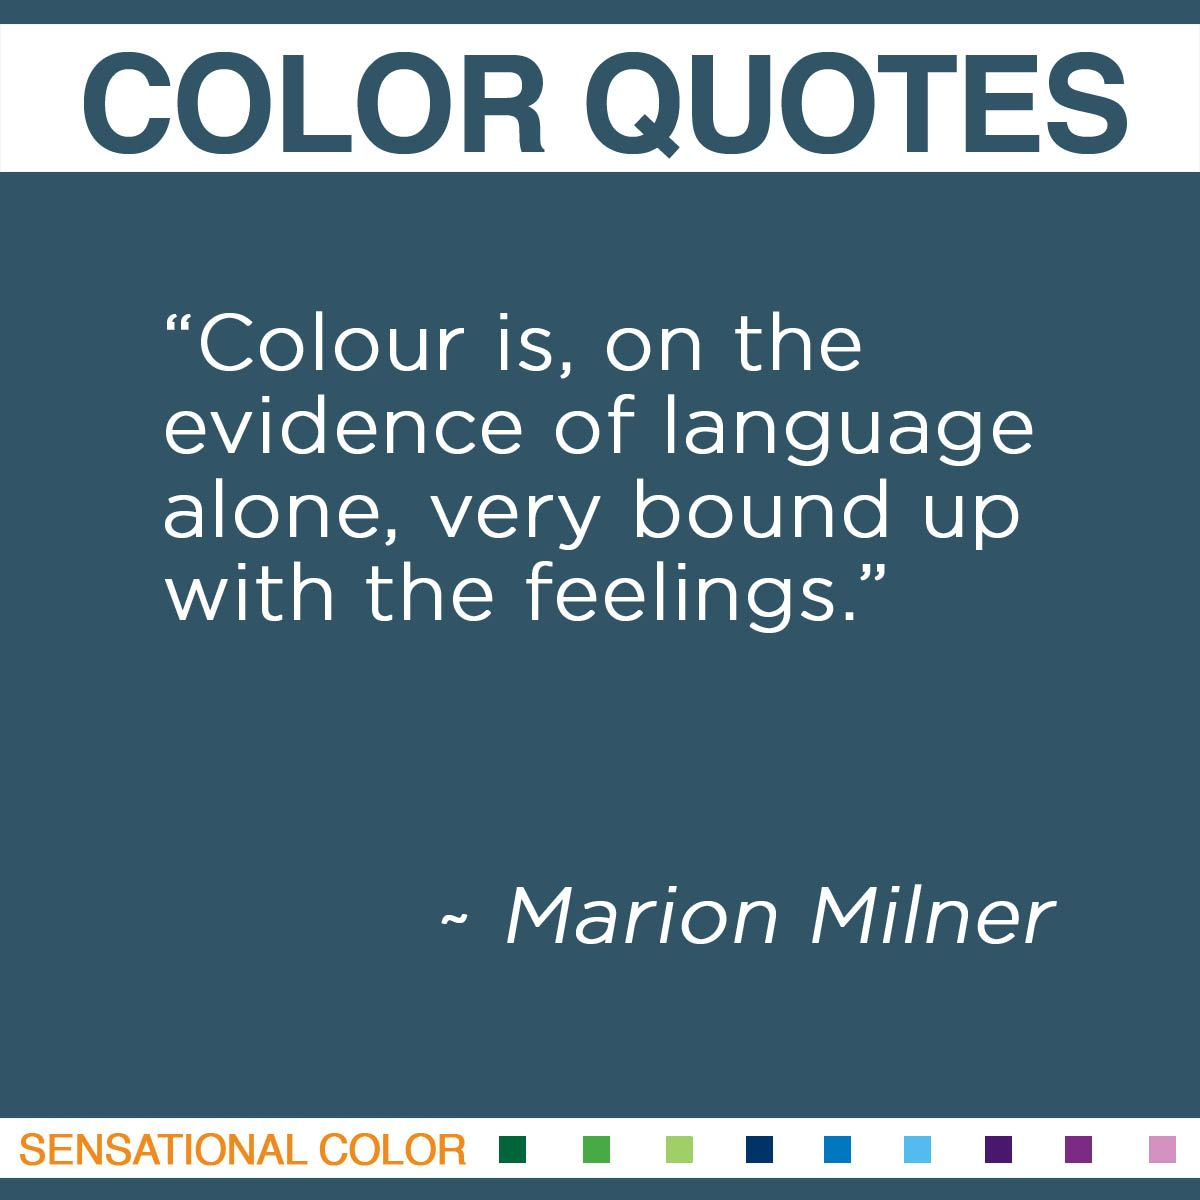 """Colour is, on the evidence of language alone, very bound up with the feelings."" - Marion Milner"